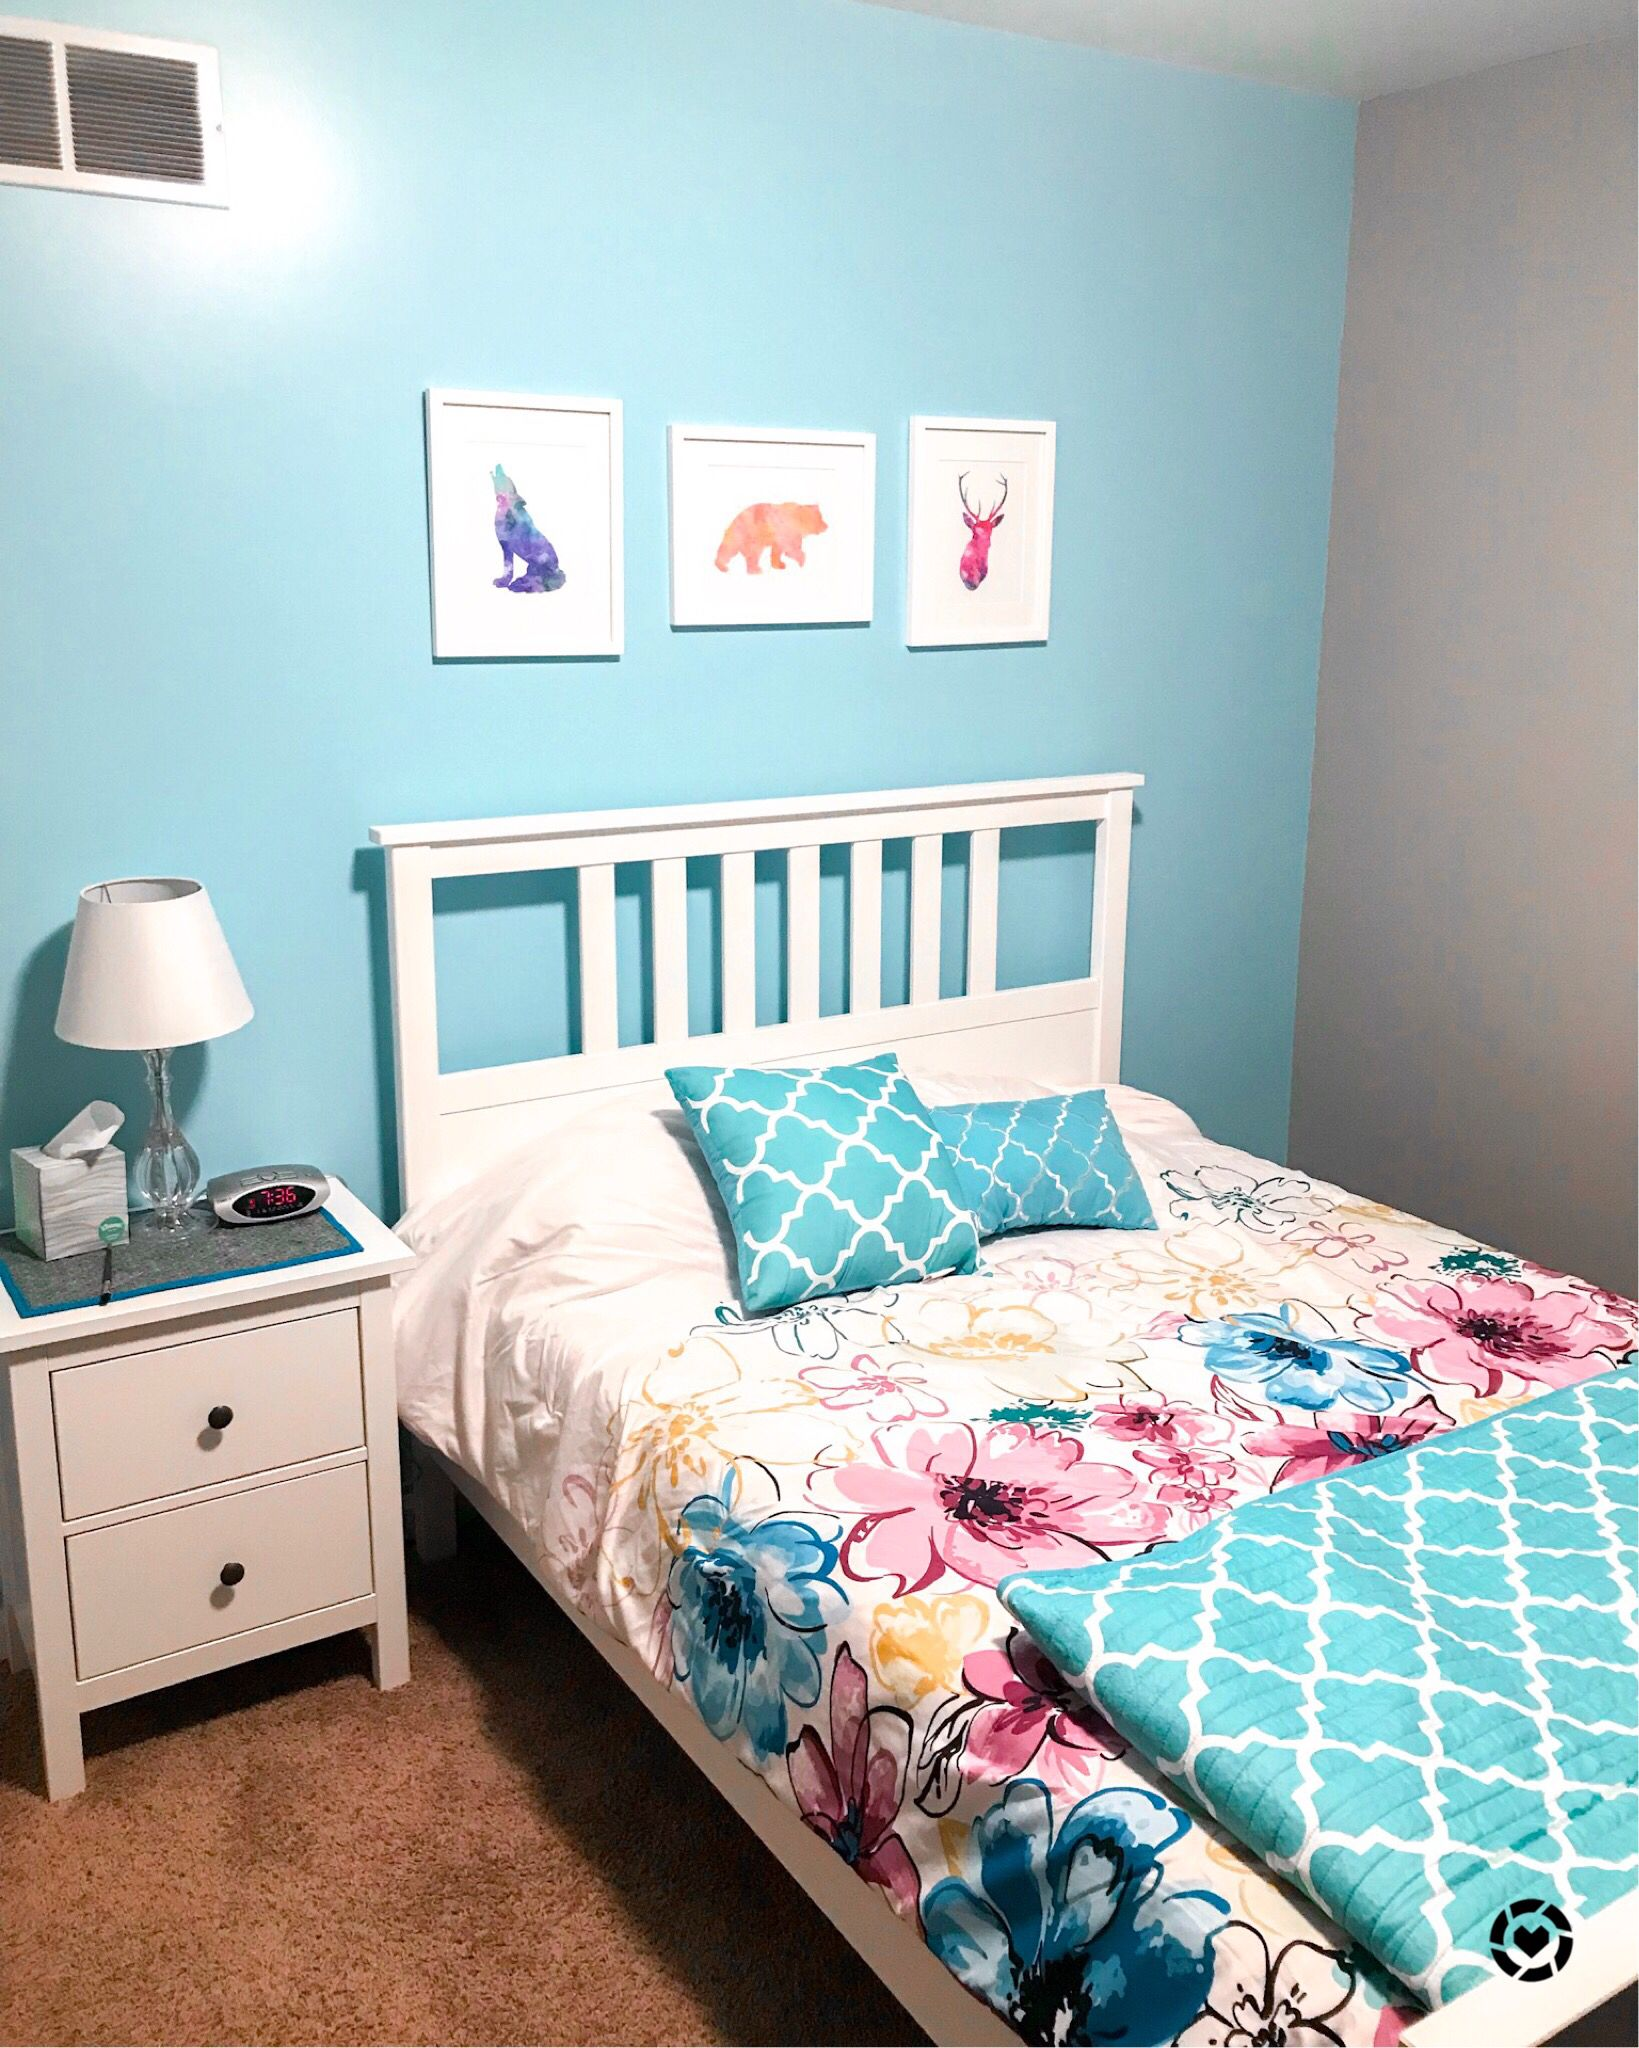 Baby girl's bedroom is all redone, and I'm in love